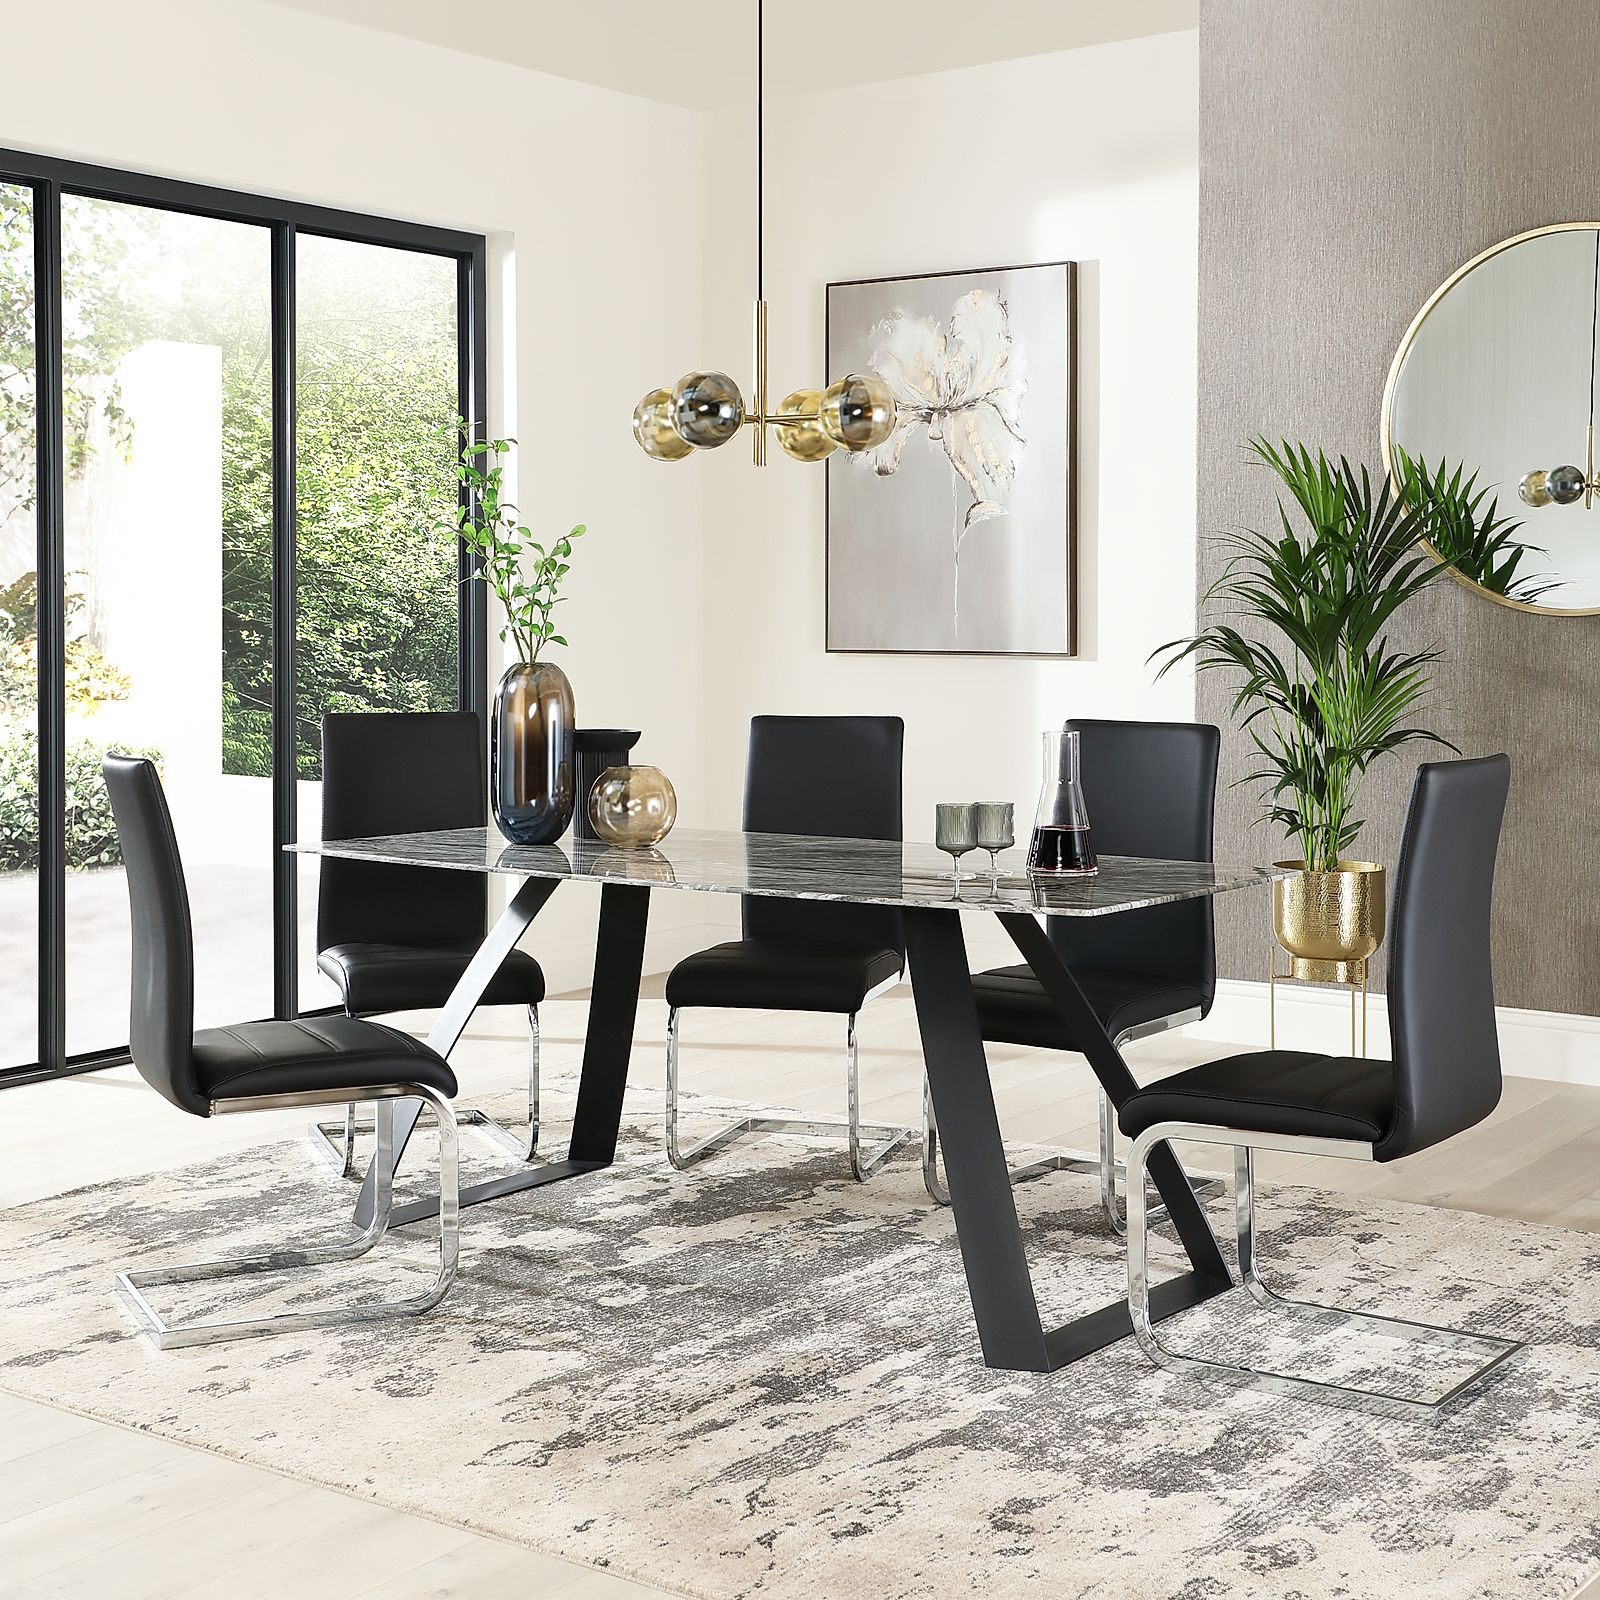 Ancona Marble Dining Table With 6 Perth Black Leather